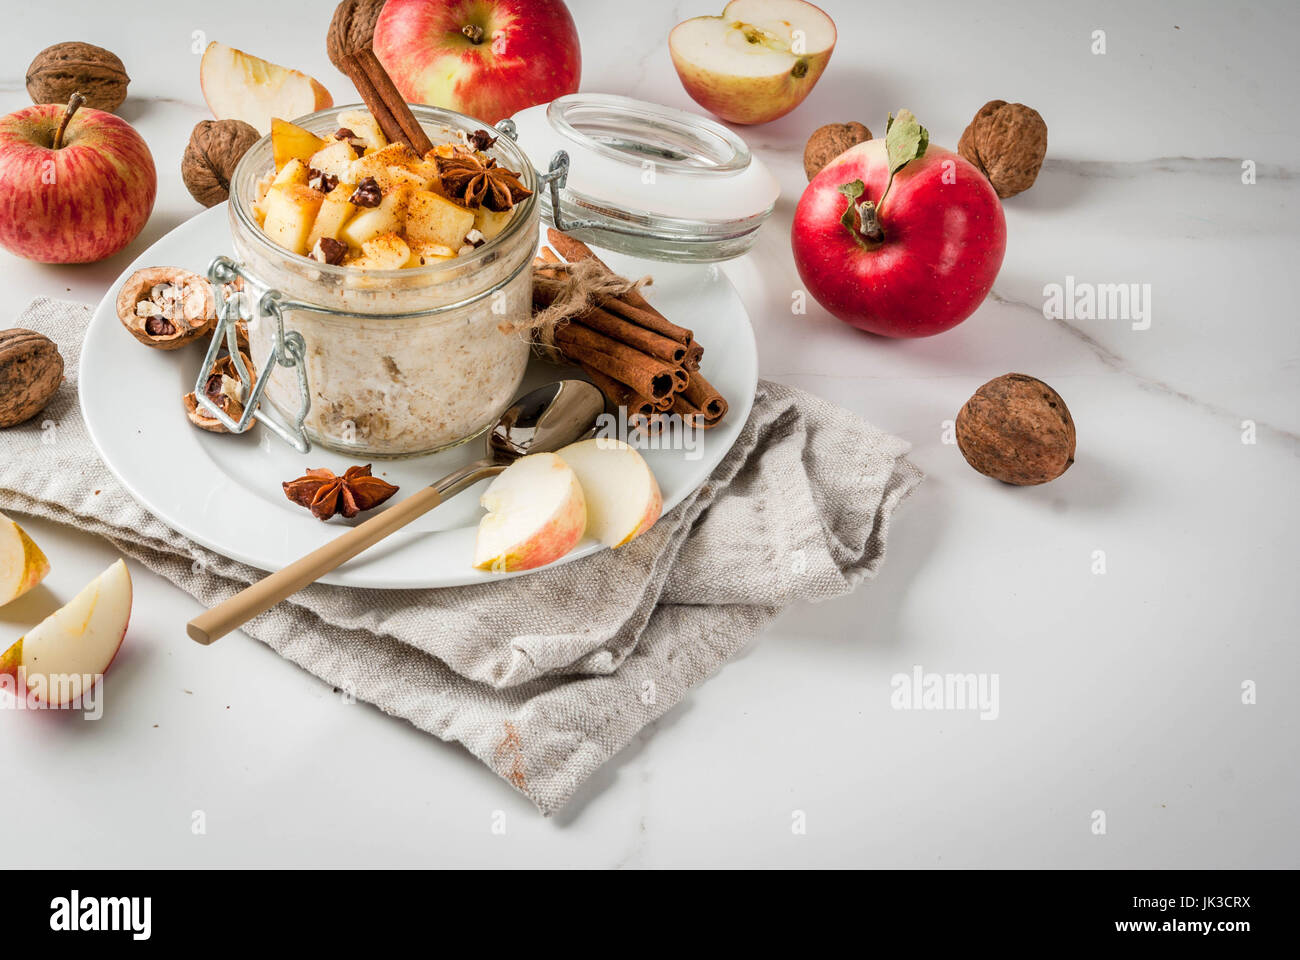 Healthy vegan food. Dietary breakfast or snack. Apple pie overnight oats, with apples, yogurt, cinnamon, spices, - Stock Image